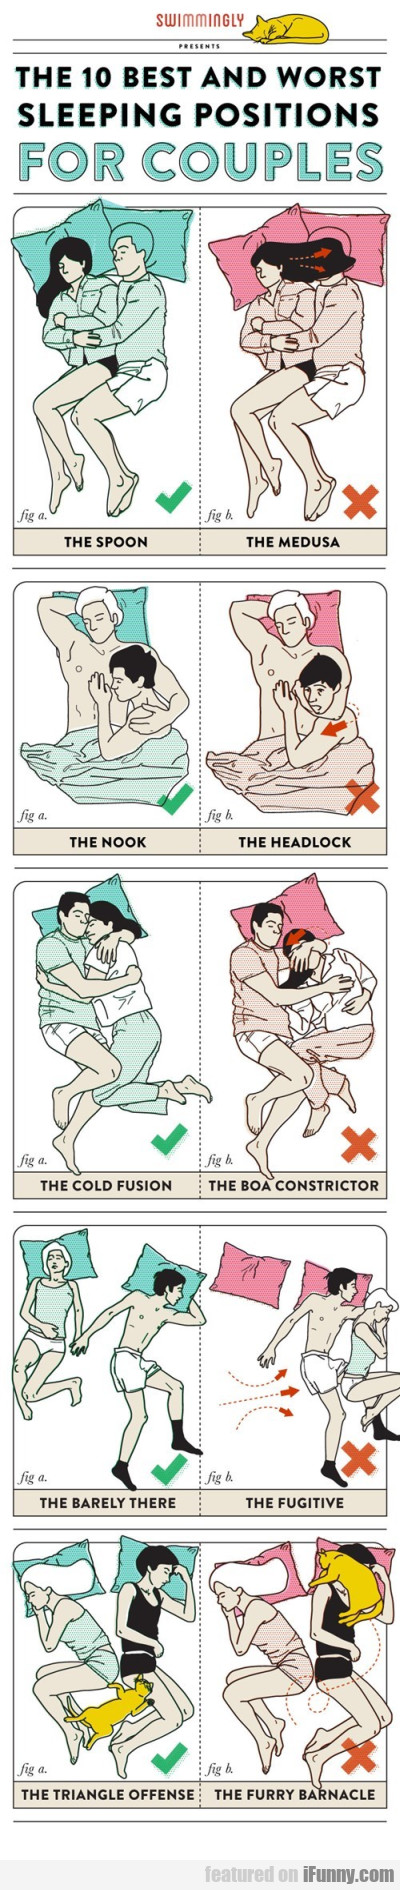 The 10 Best And Worst Sleeping Postion